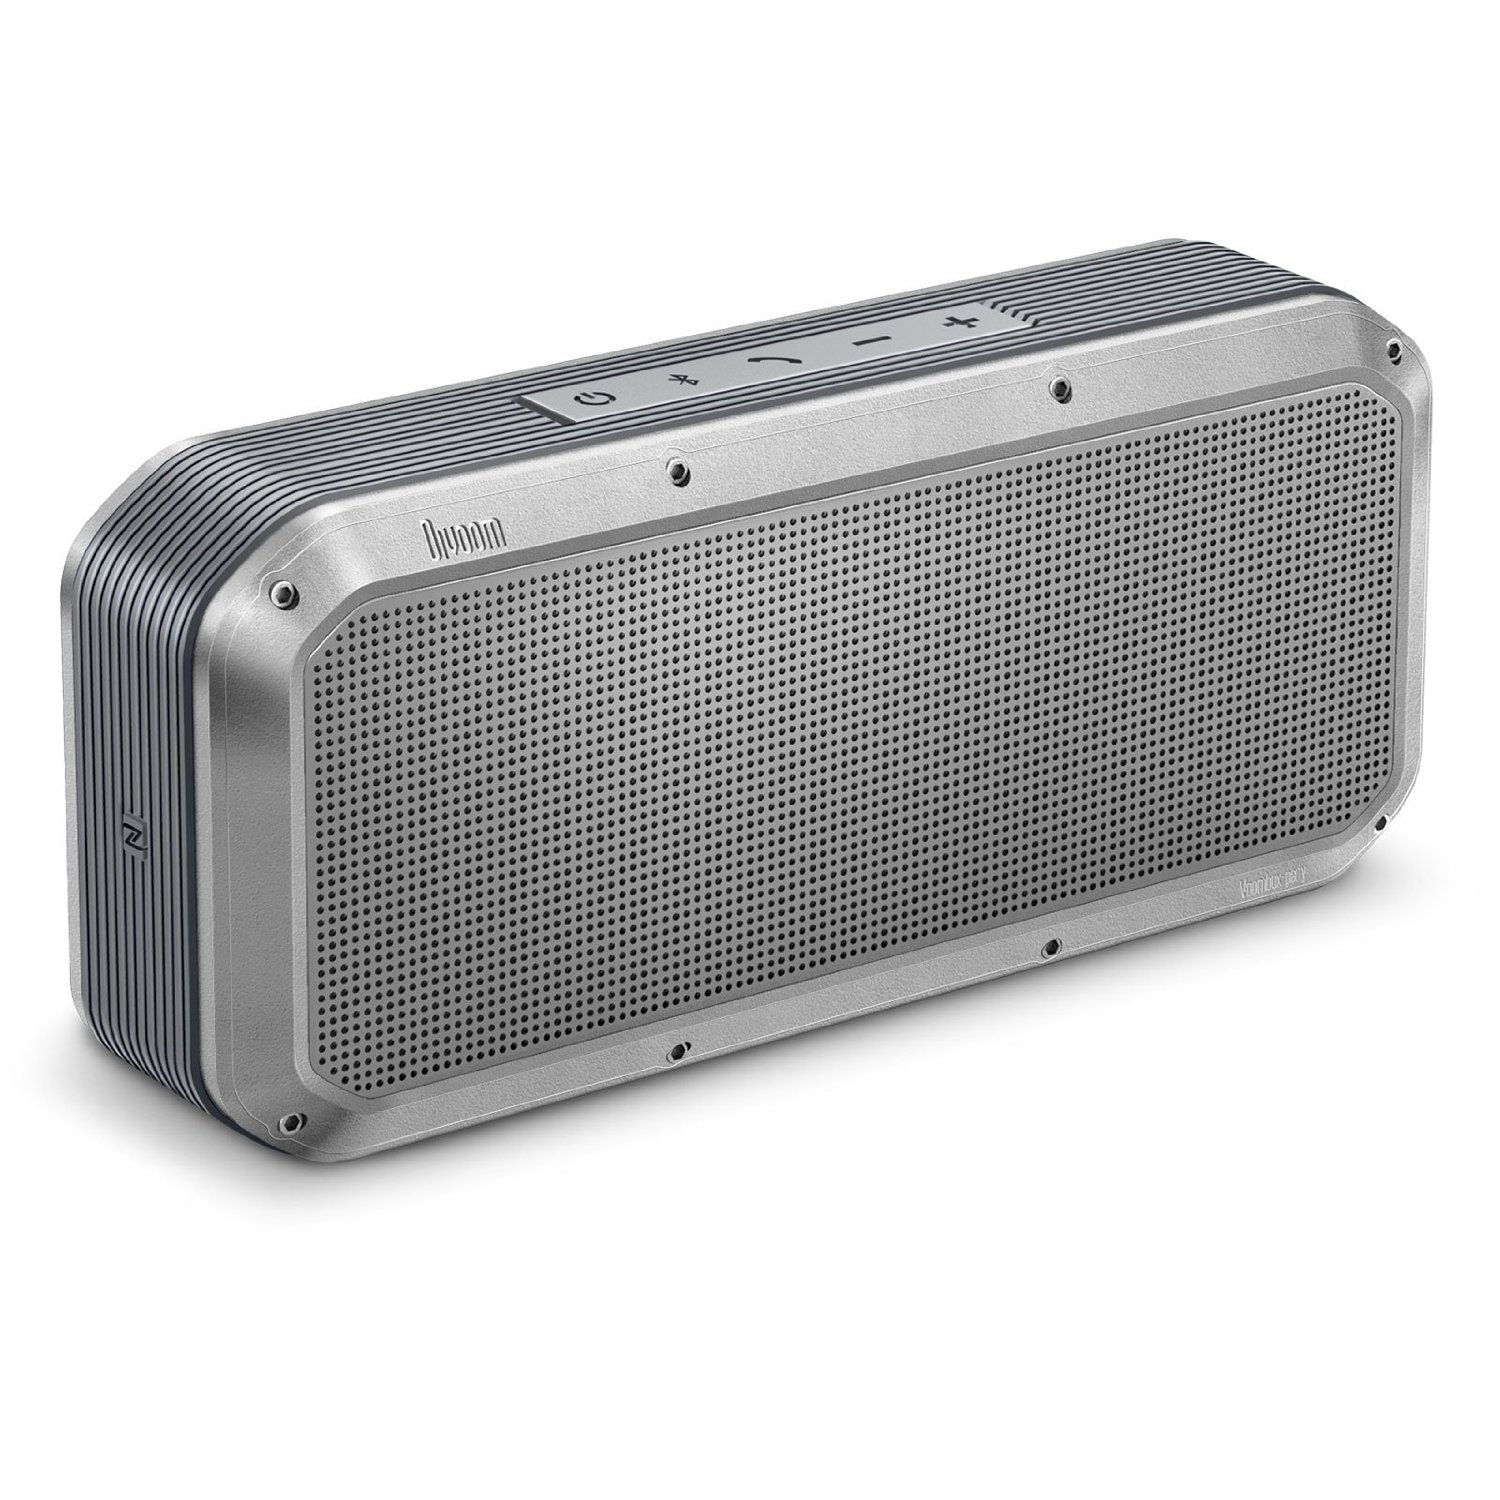 WHOLESALE DIVOOM LIFESTYLE SPEAKER: VOOMBOX PARTY SILVER, RMS 20W, NFC, WATER-RESISTANT_3